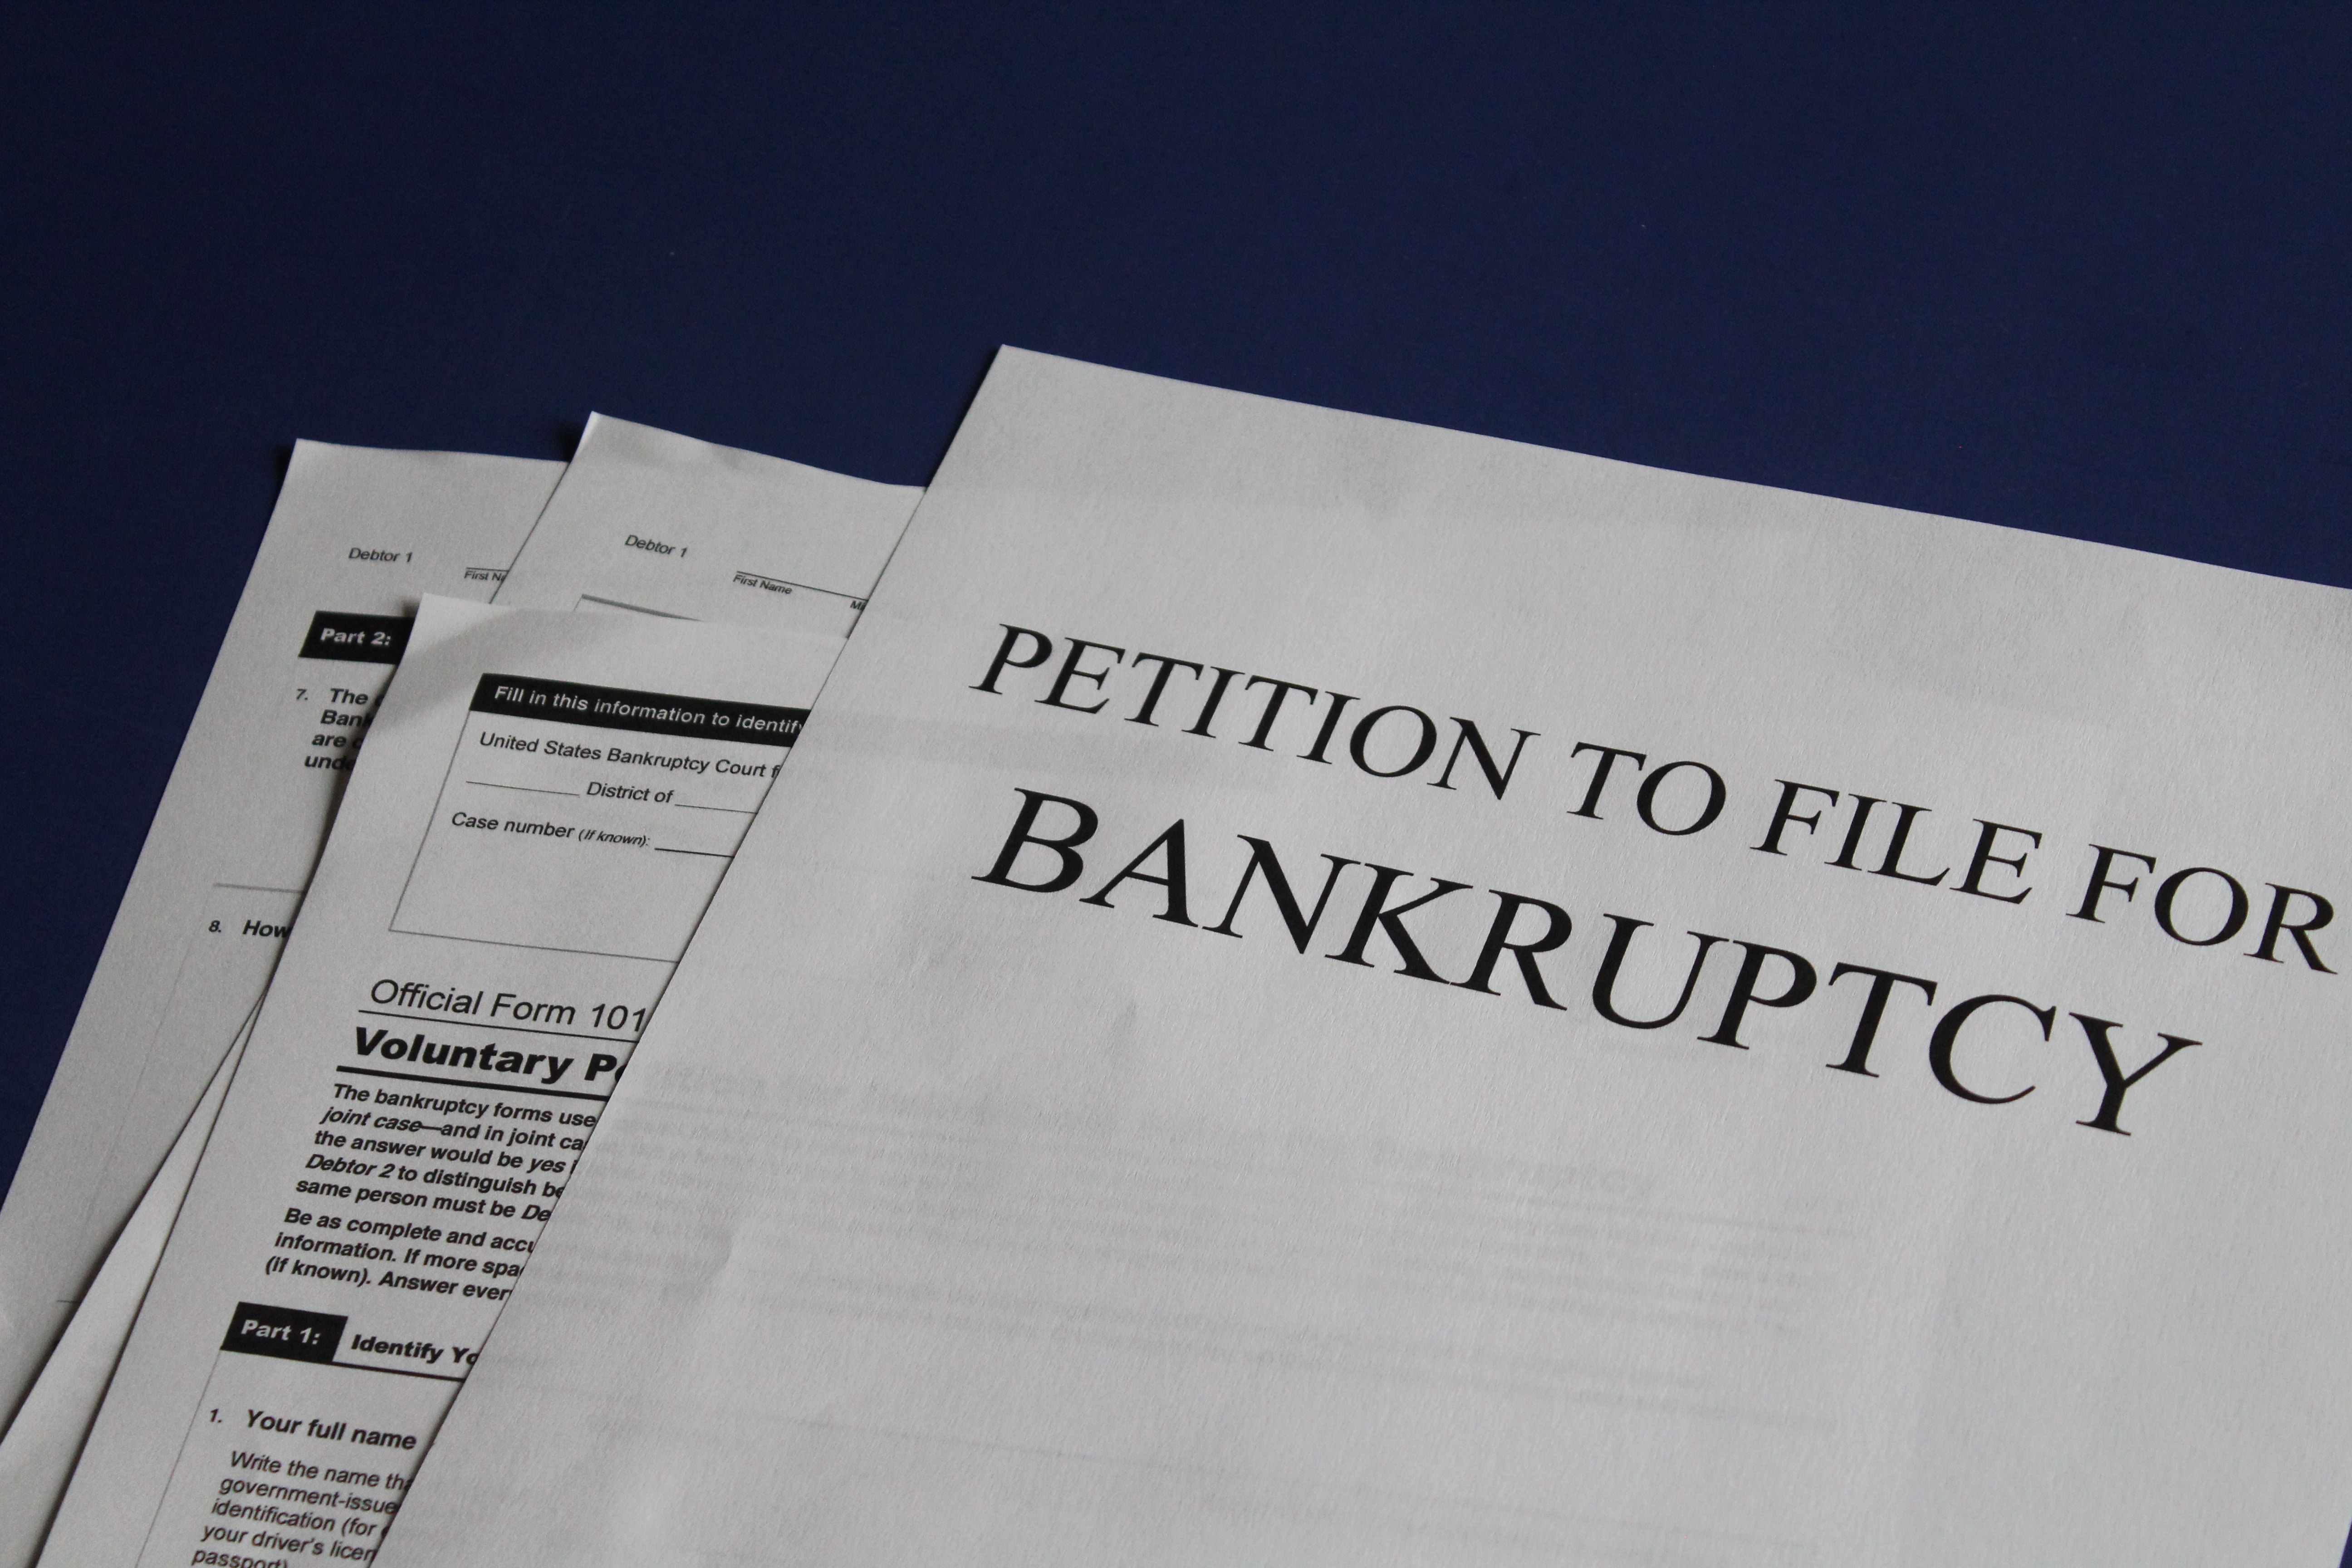 One of Florida's biggest foreclosure defense law firms, Stay In My Home P.A., which was founded by high-profile attorney Mark Stopa, has declared bankruptcy. The roughly 4,000 clients of the firm will need to look elsewhere for legal services.